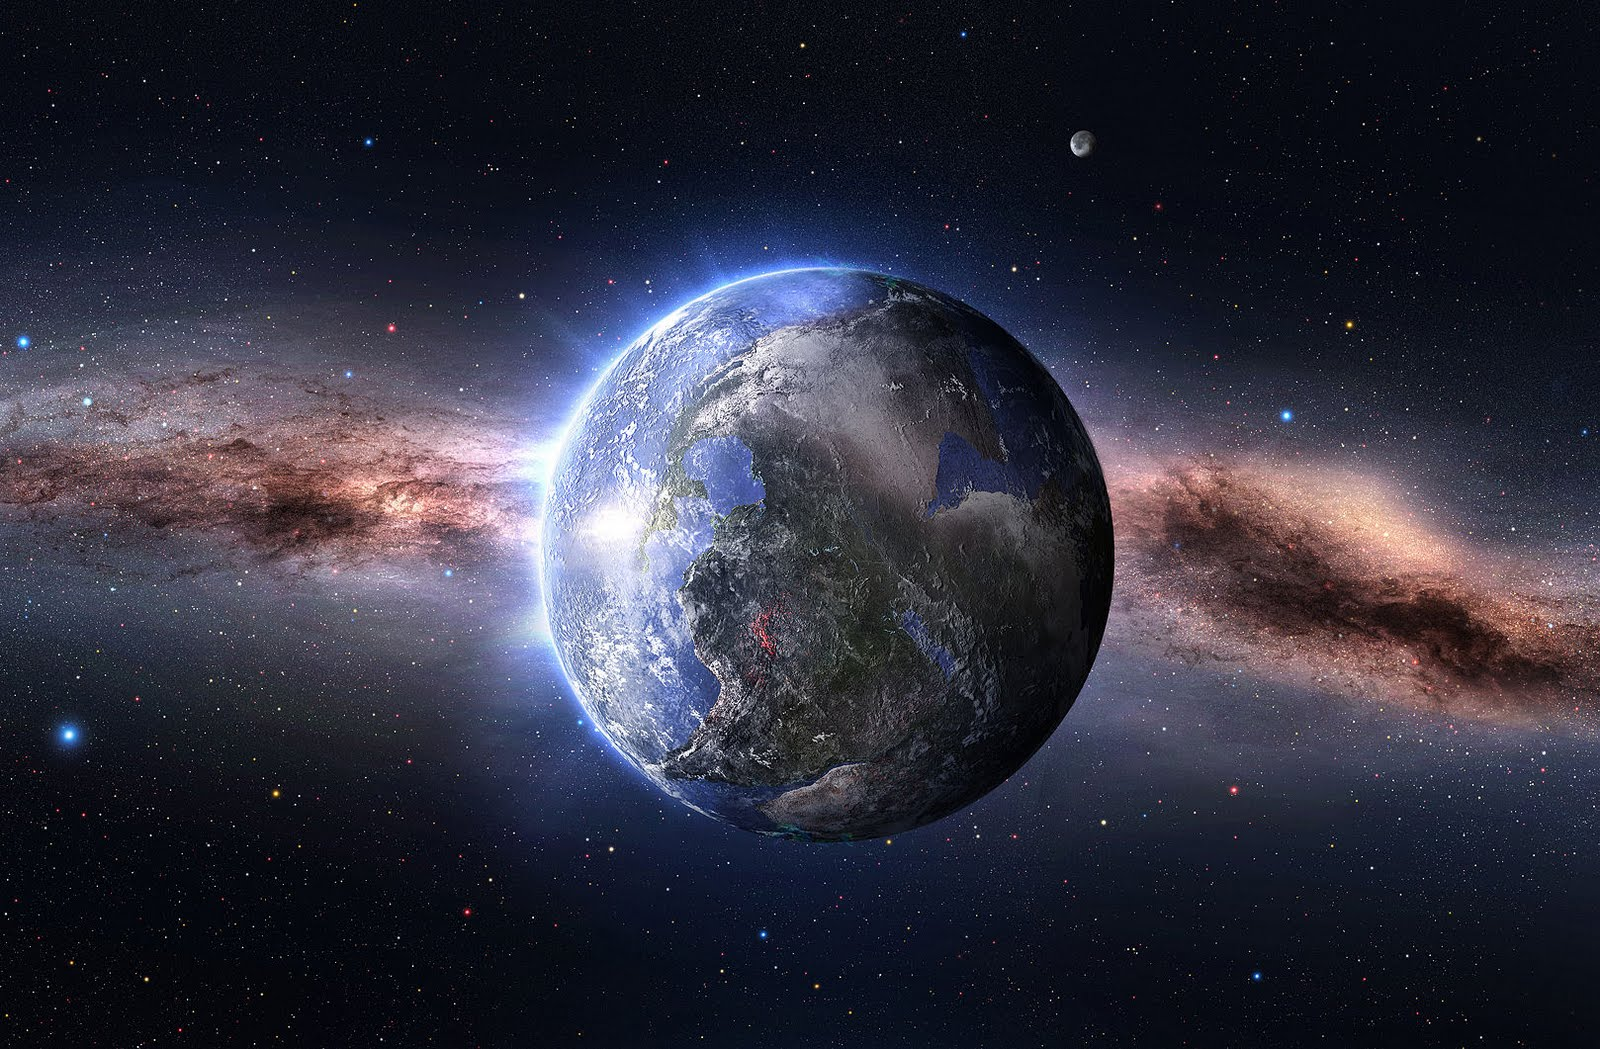 FOTOFRONTERA: Wallpaper de nuestro planeta - Our planet wallpaper